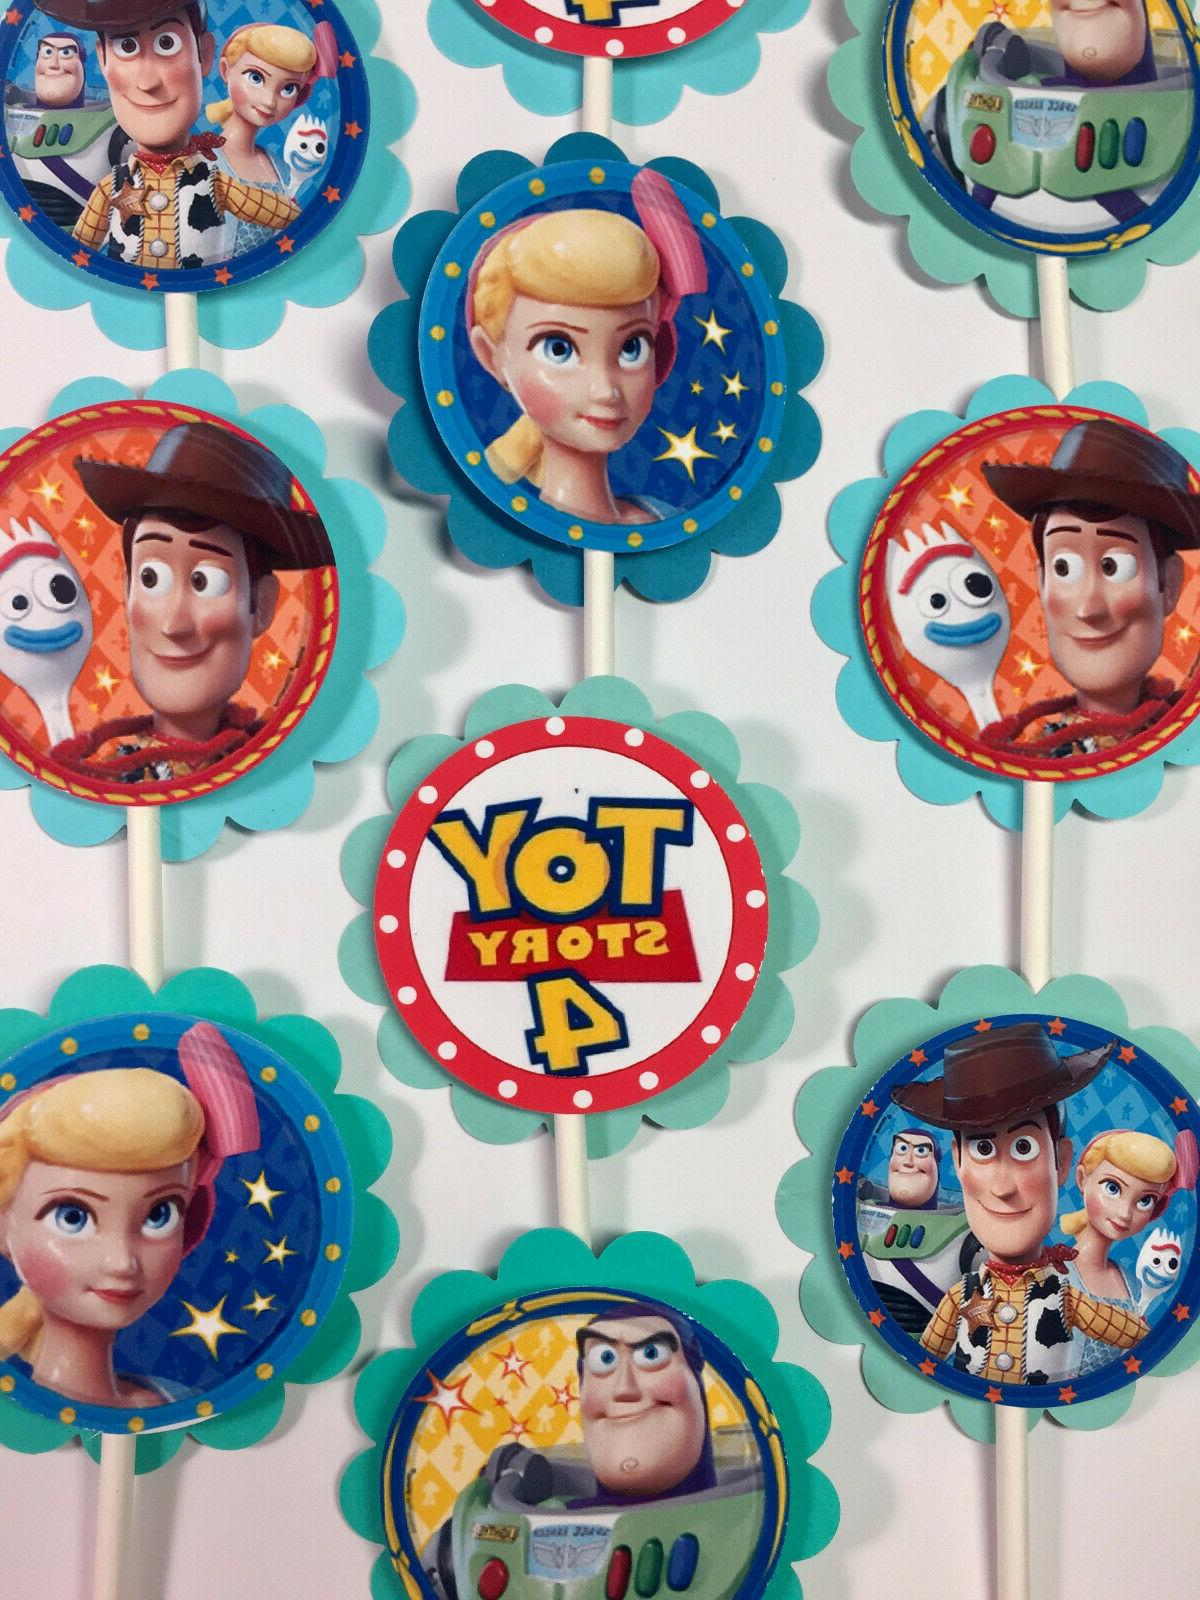 30 toy story 4 party cupcake toppers